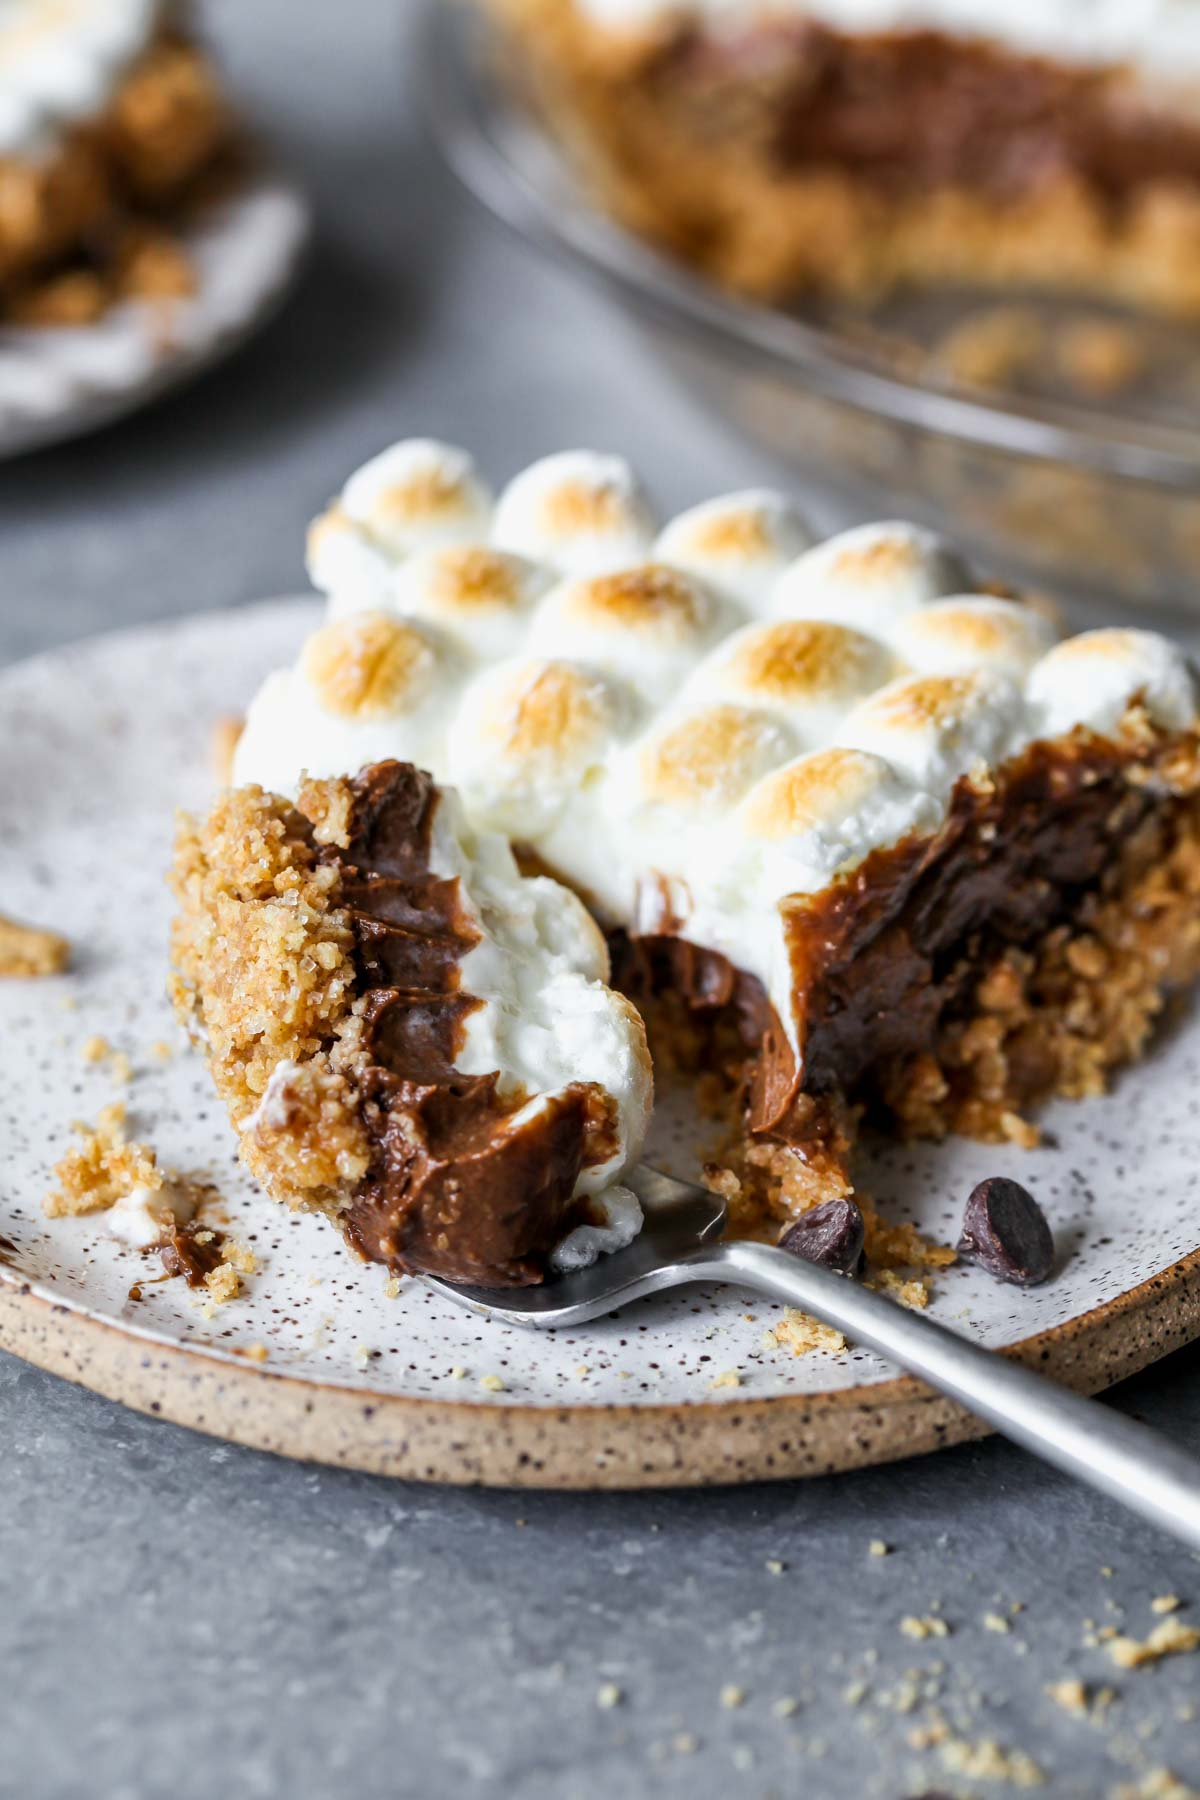 S'mores pie on a plate with a fork taking a bite out